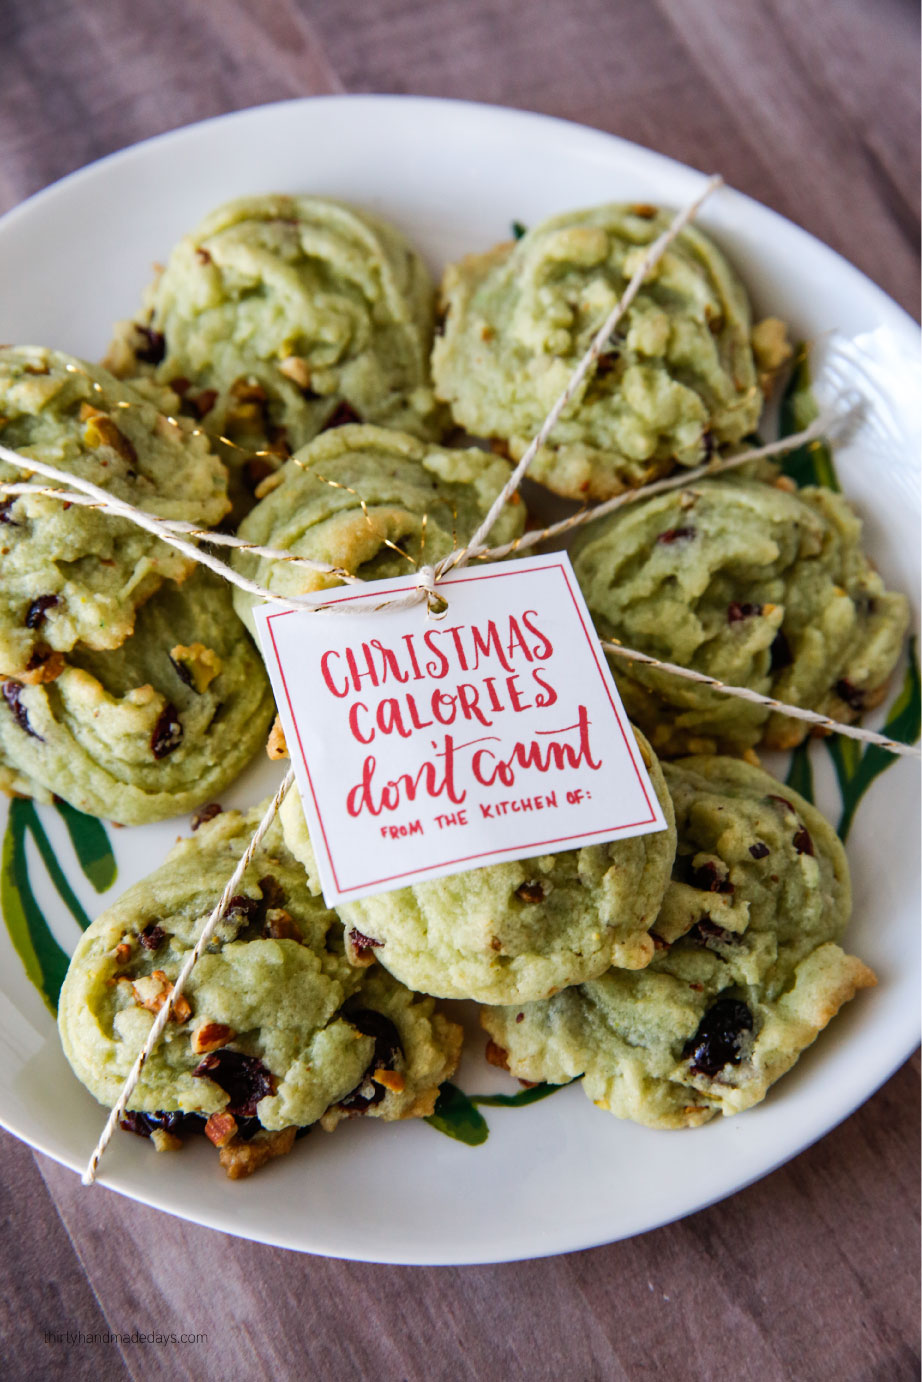 Holidays: Amazing Christmas Cookies that are super easy to make.  We love these Cranberry Pistachio Cookies so much!  from thirtyhandmadedays.com